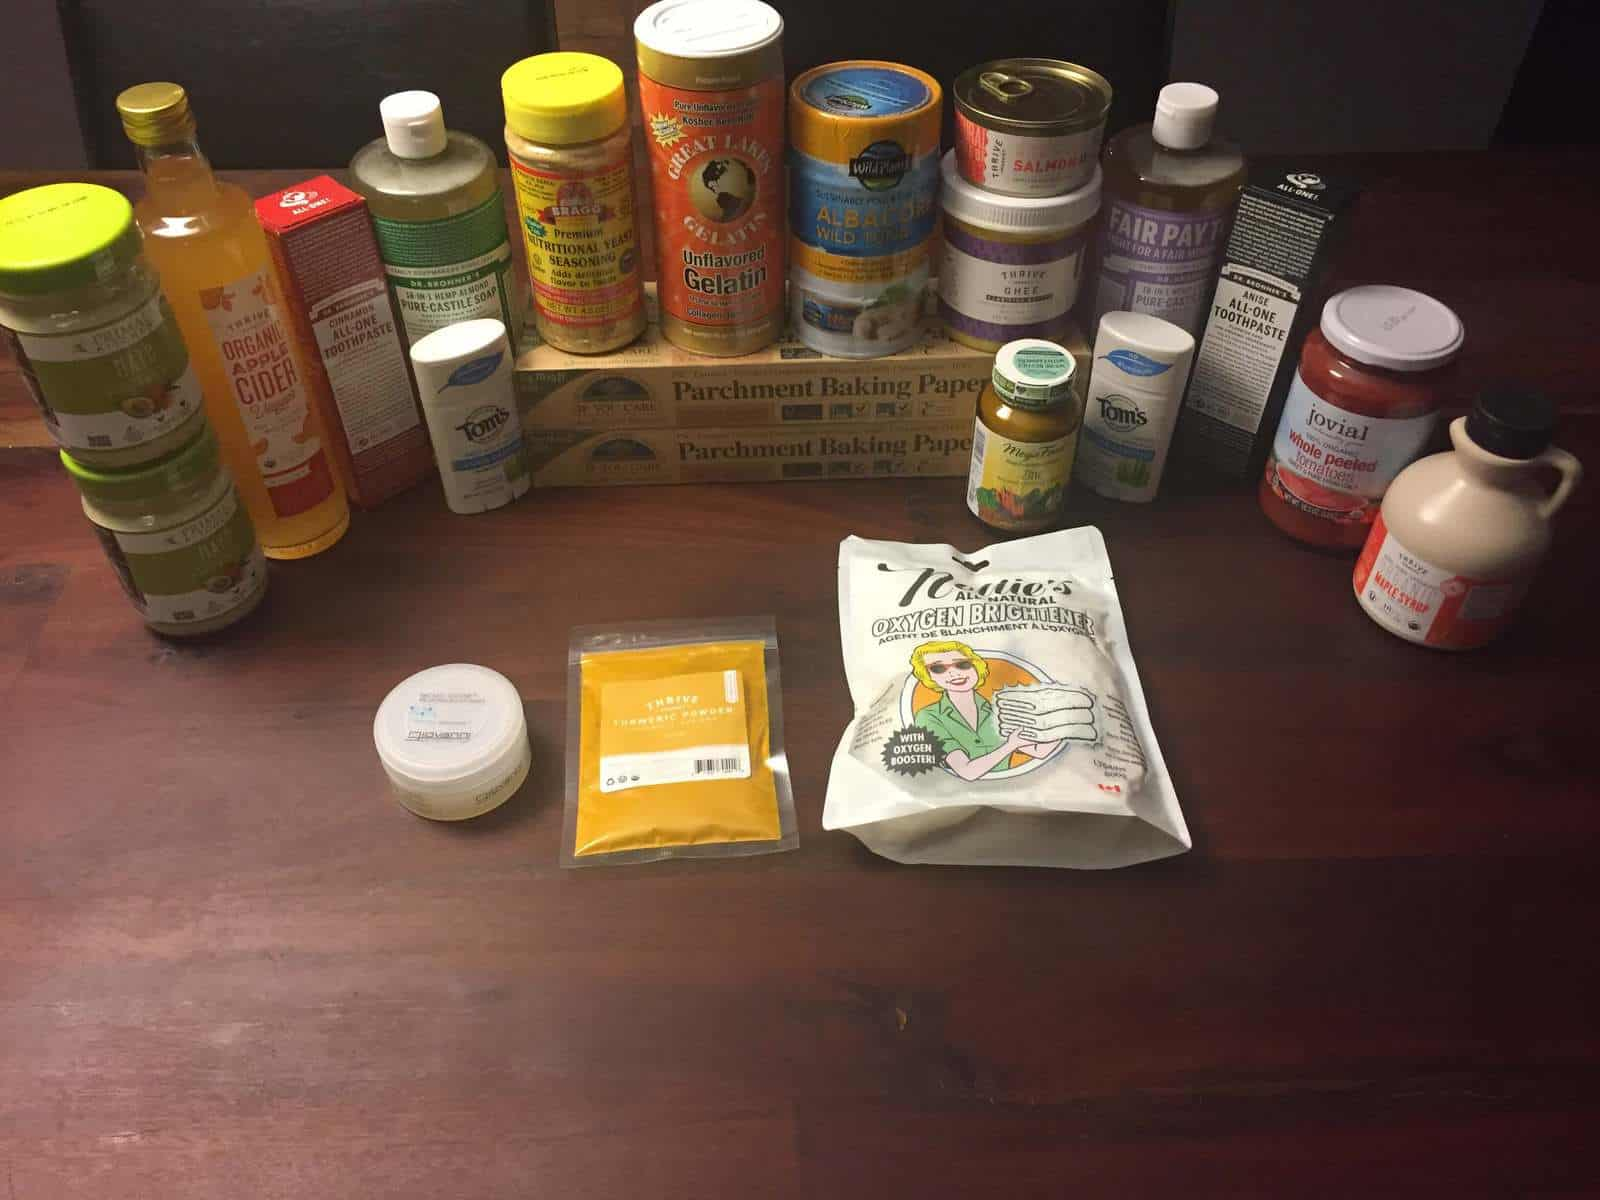 Products from Thrive Market